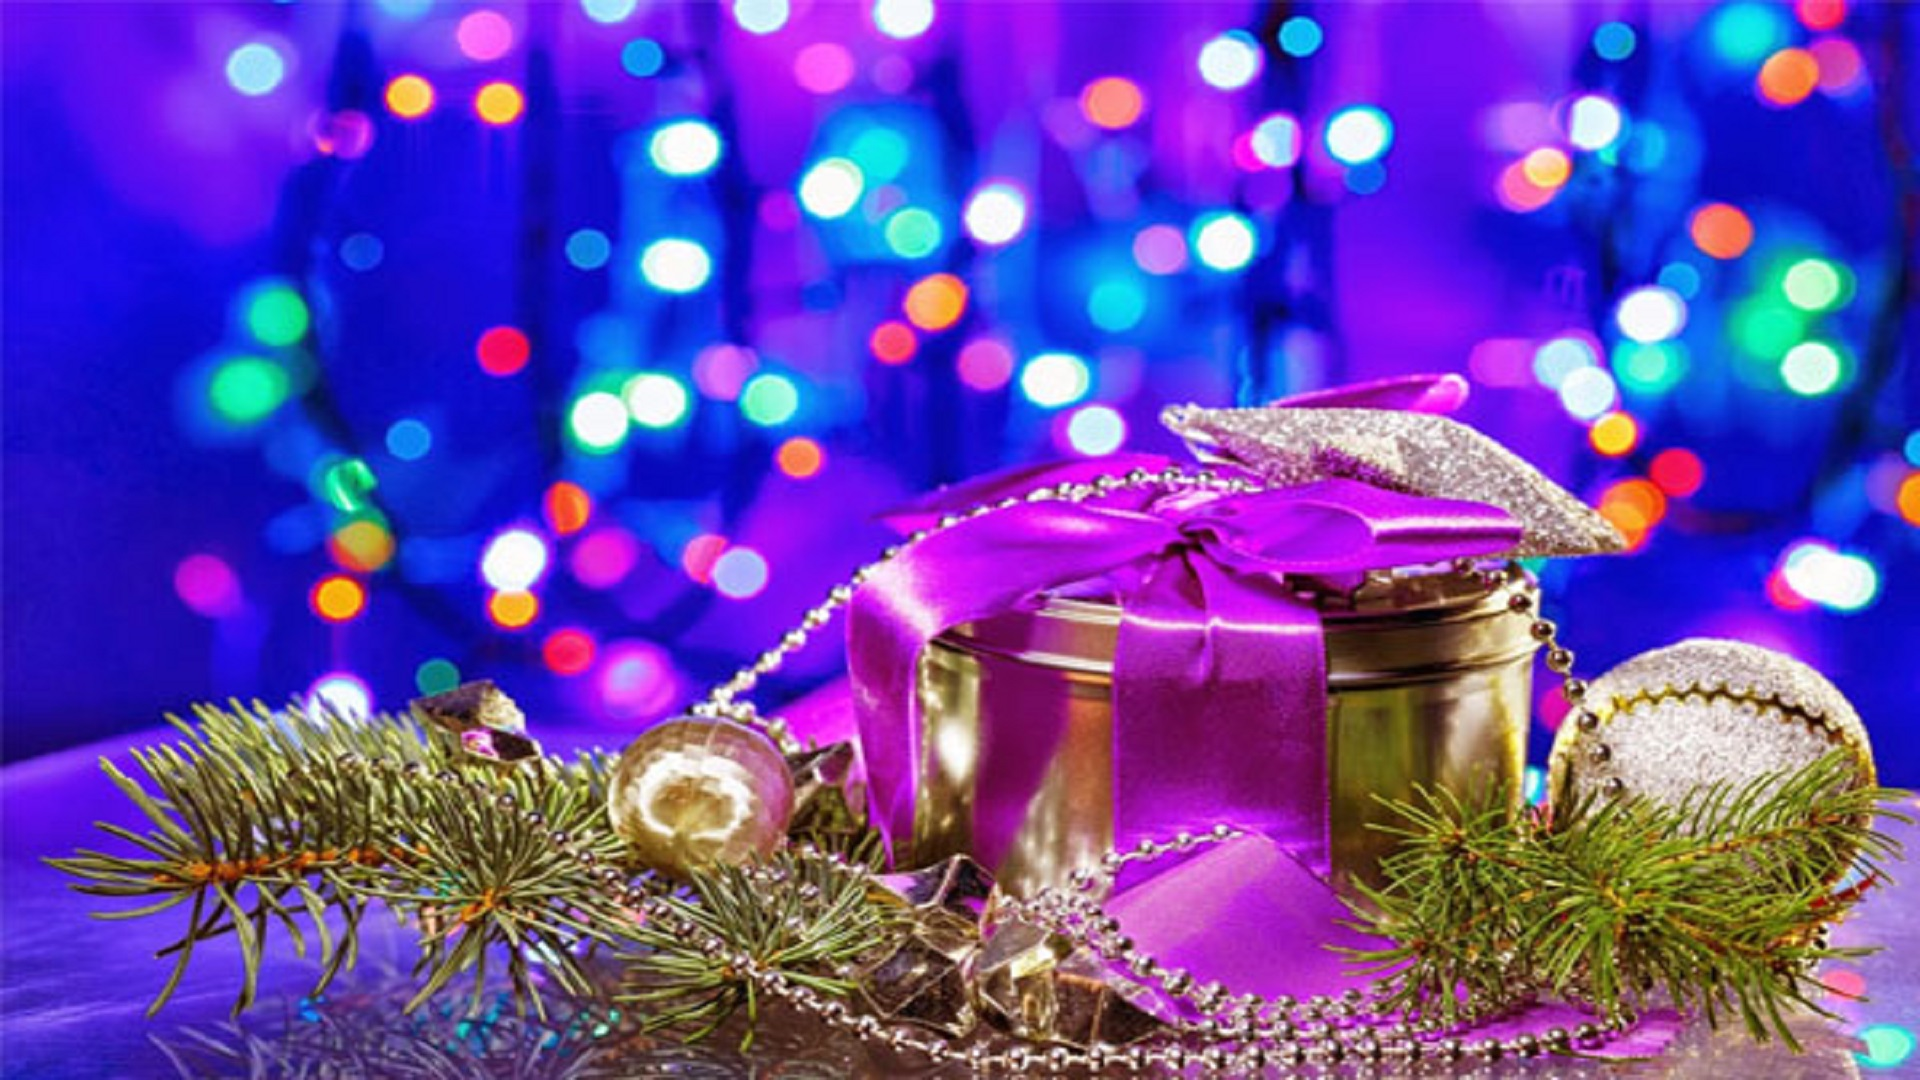 top 10 christmas backgrounds - photo #39